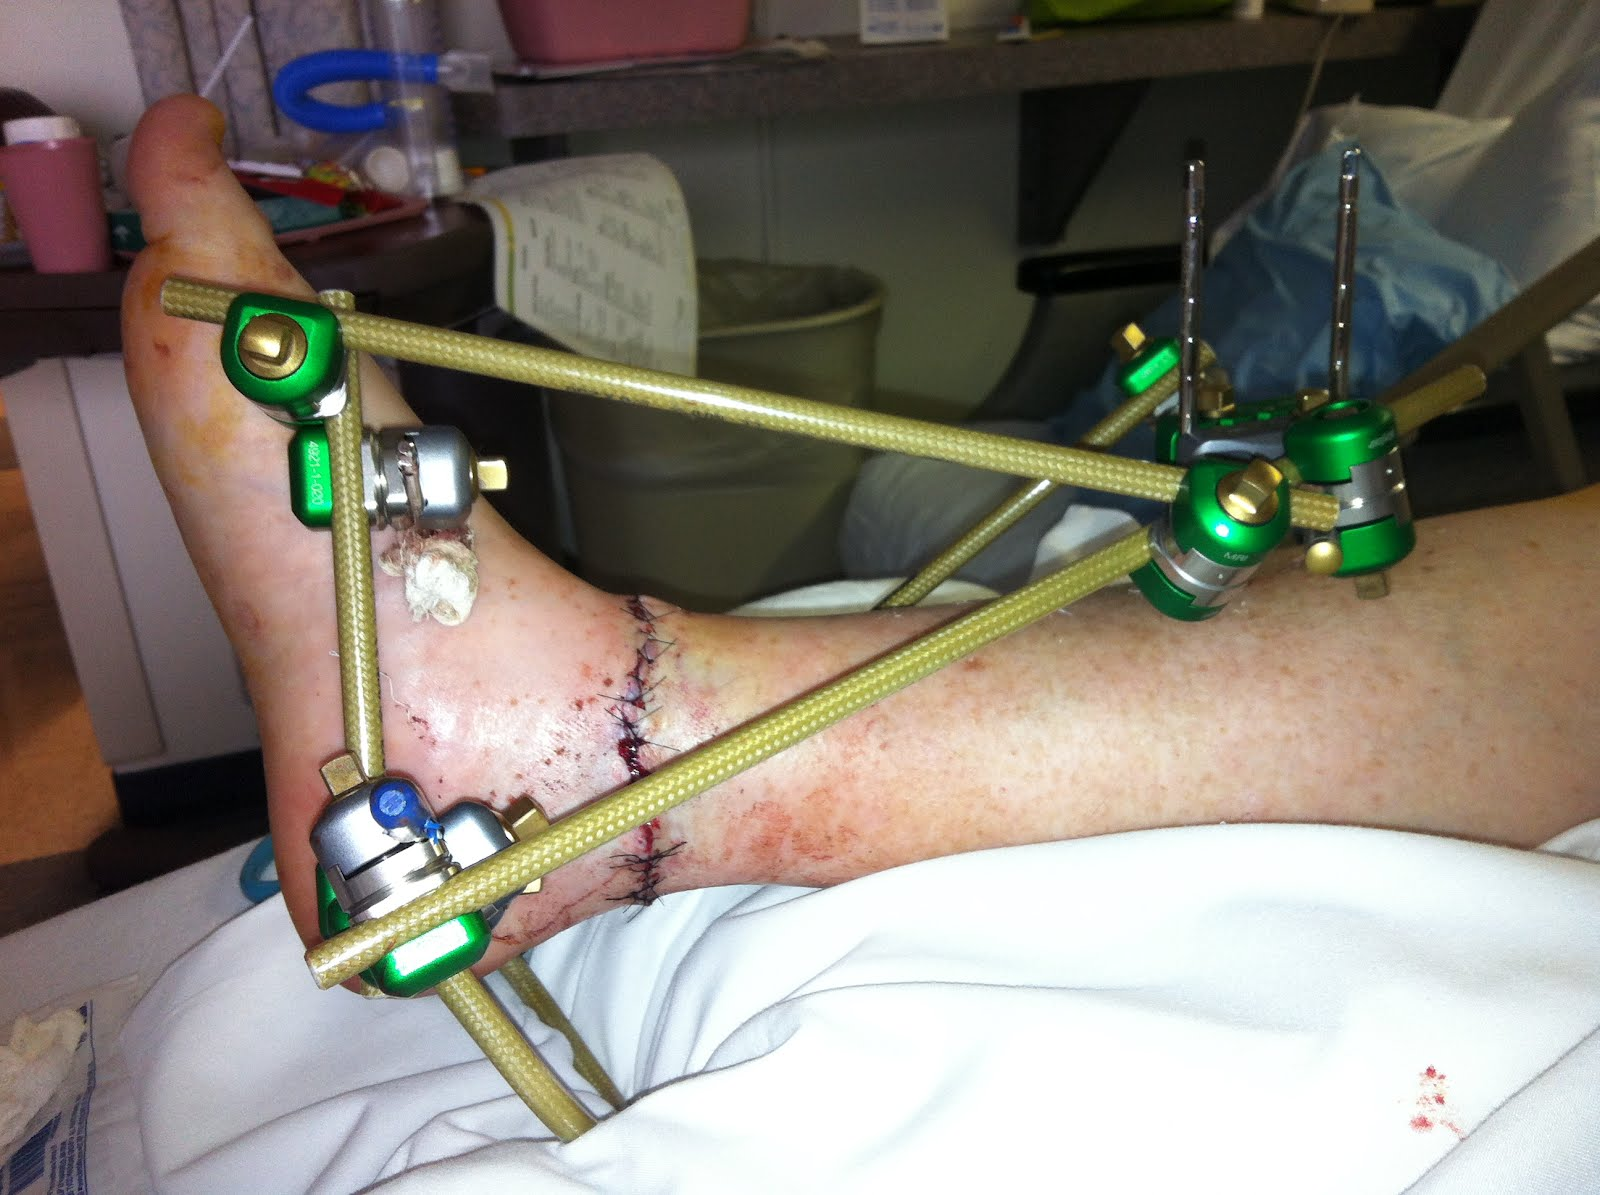 External Fixation Device Leg-2.bp.blogspot.com